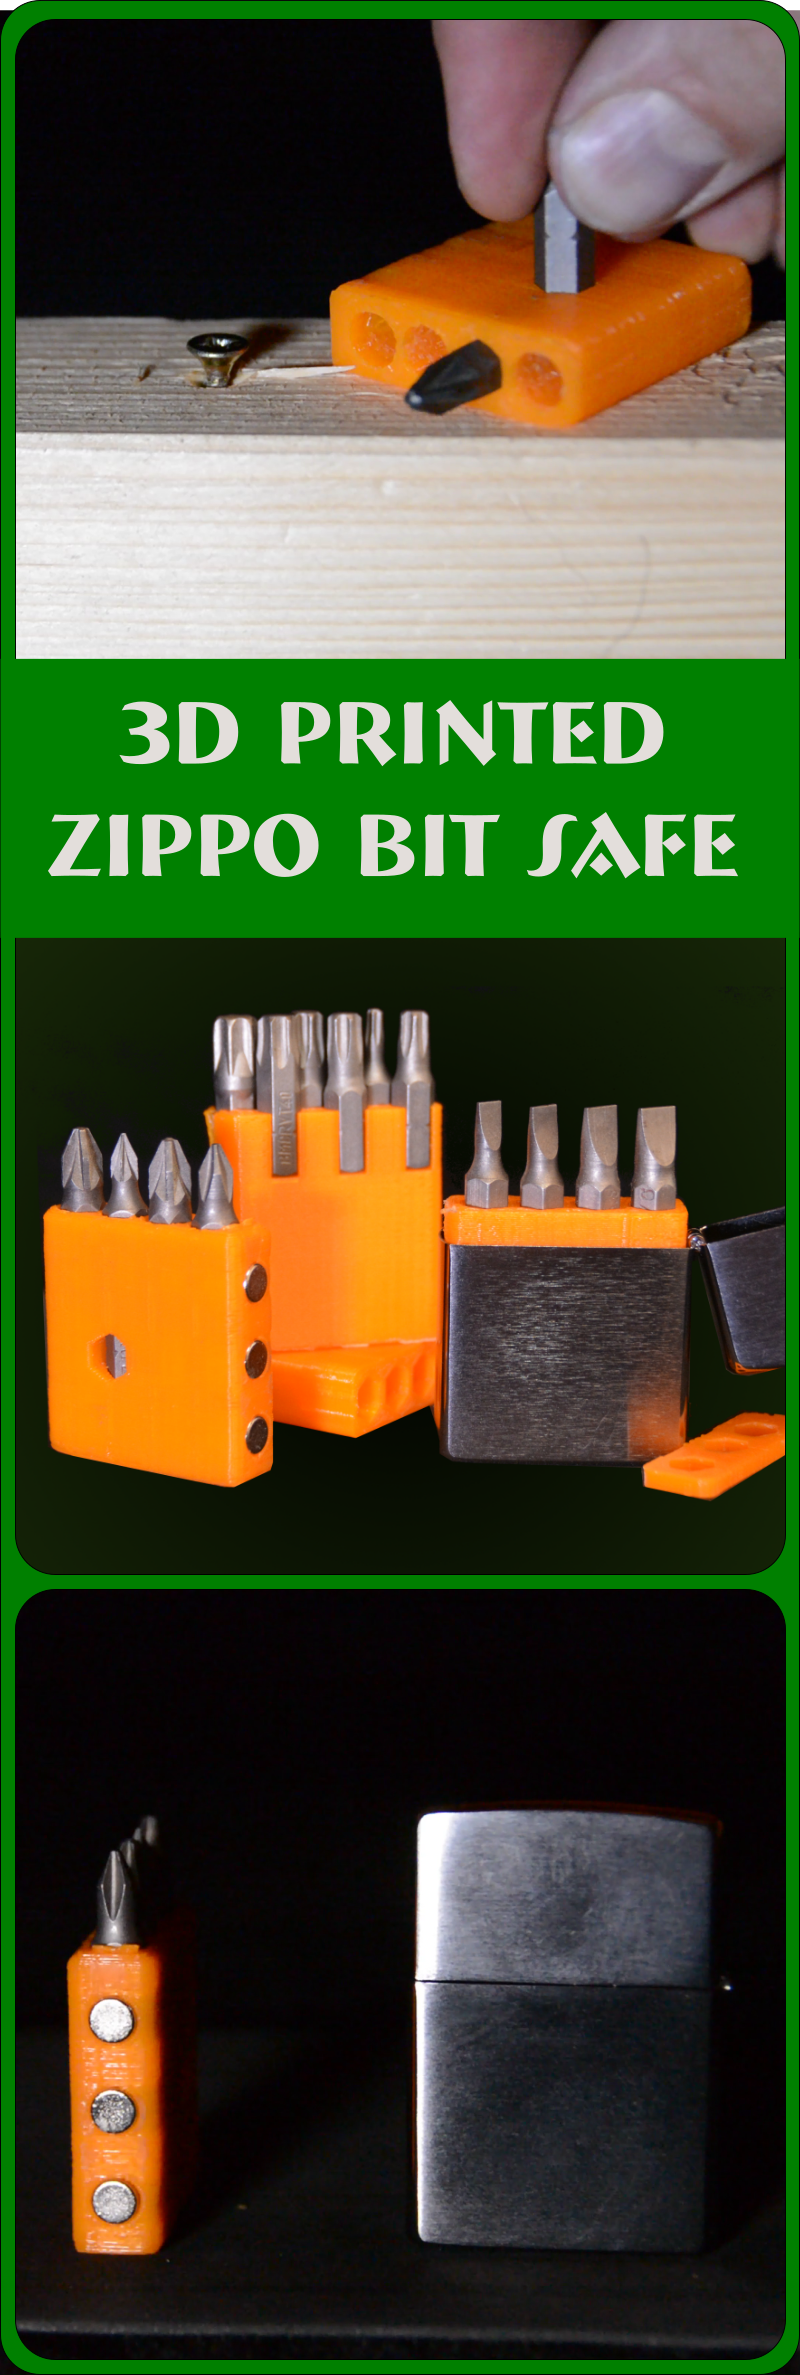 Creating a 3d printed holder for screwdriver bits that fits in a Zippo as part of your EDC